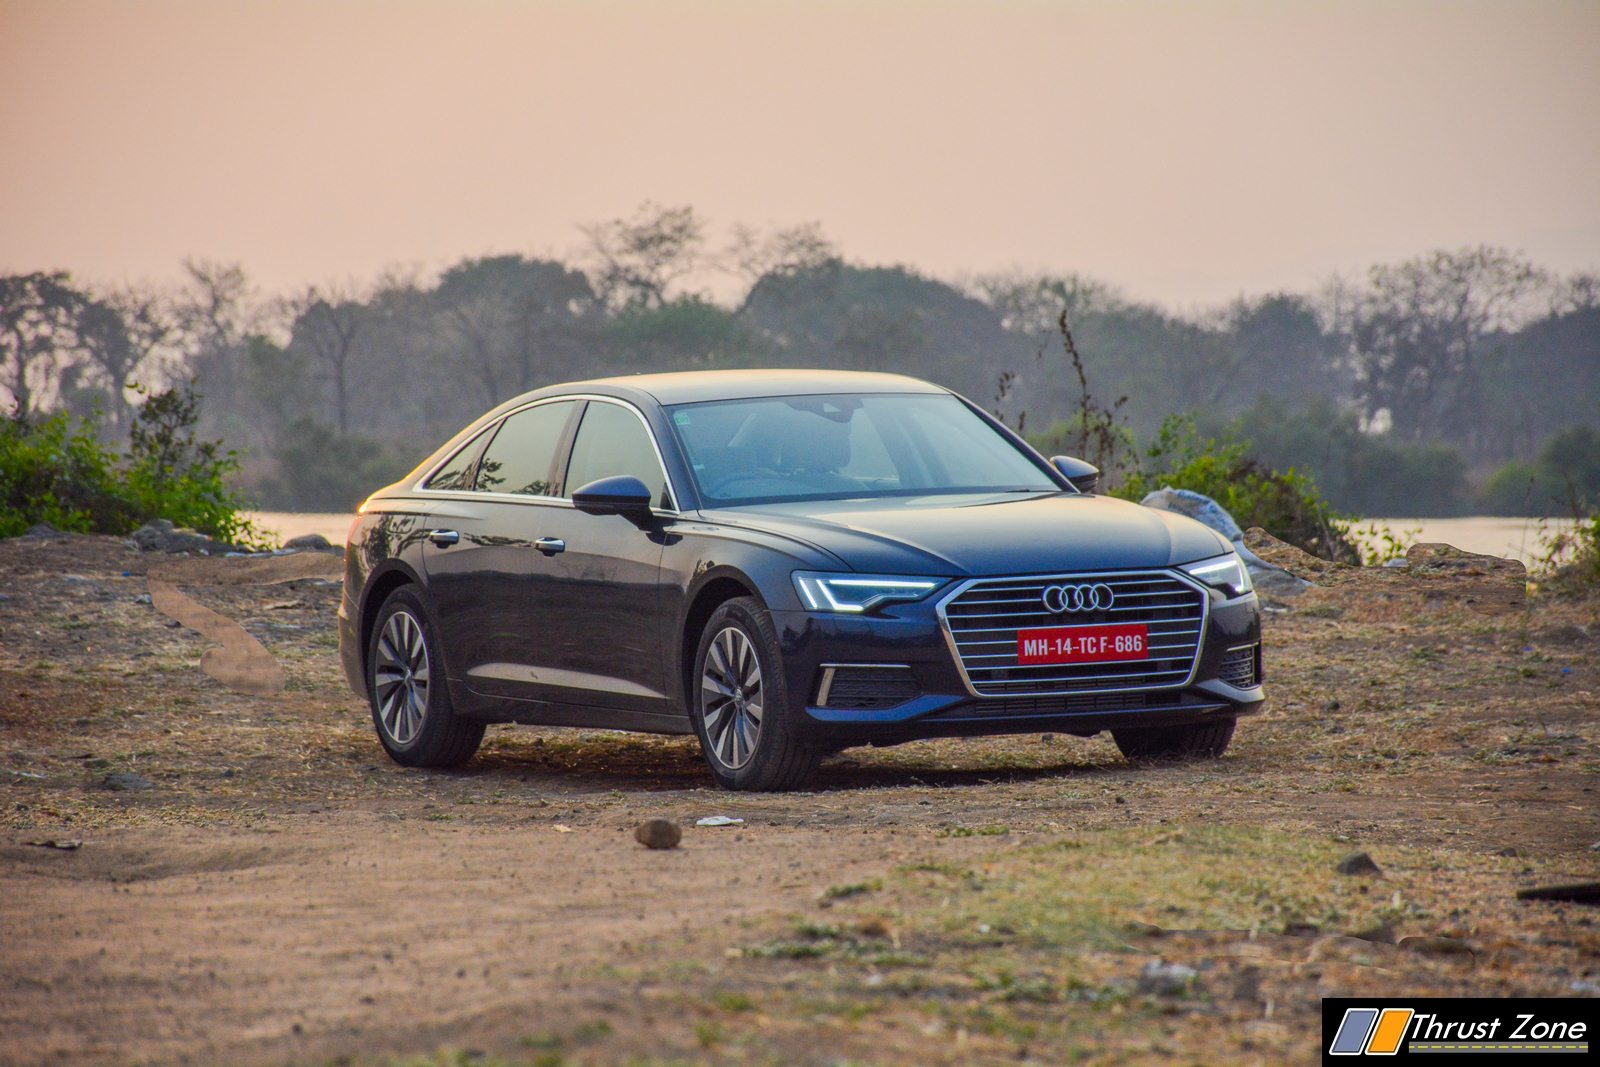 We don't have luxury car, we only have an Audi A6 car, Madan's wife